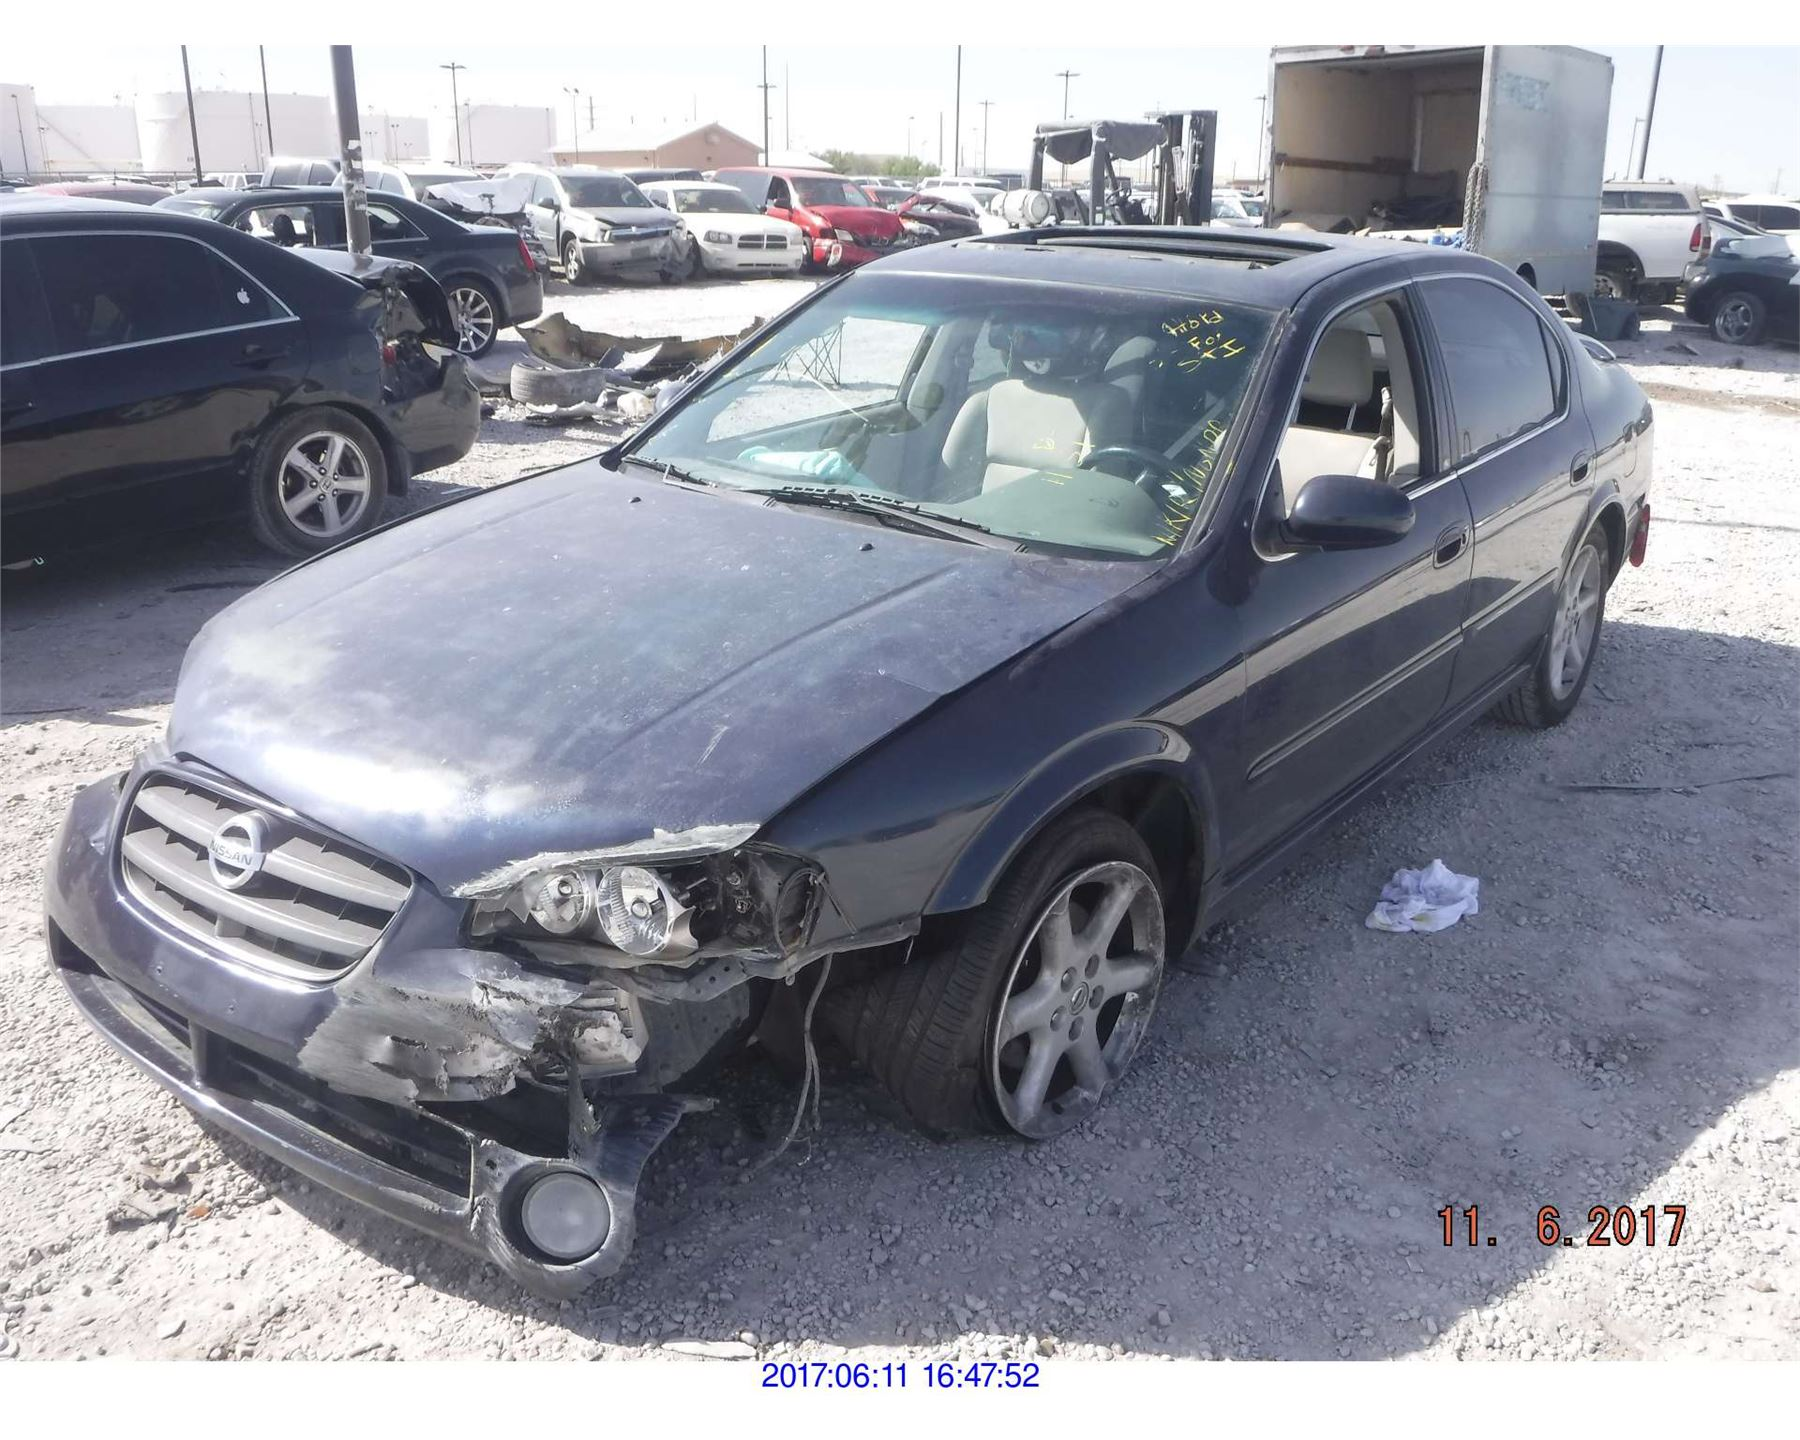 Nissan Salvage For Sale Repairable Cars At Auction Prices: NISSAN MAXIMA//REBUILT SALVAGE